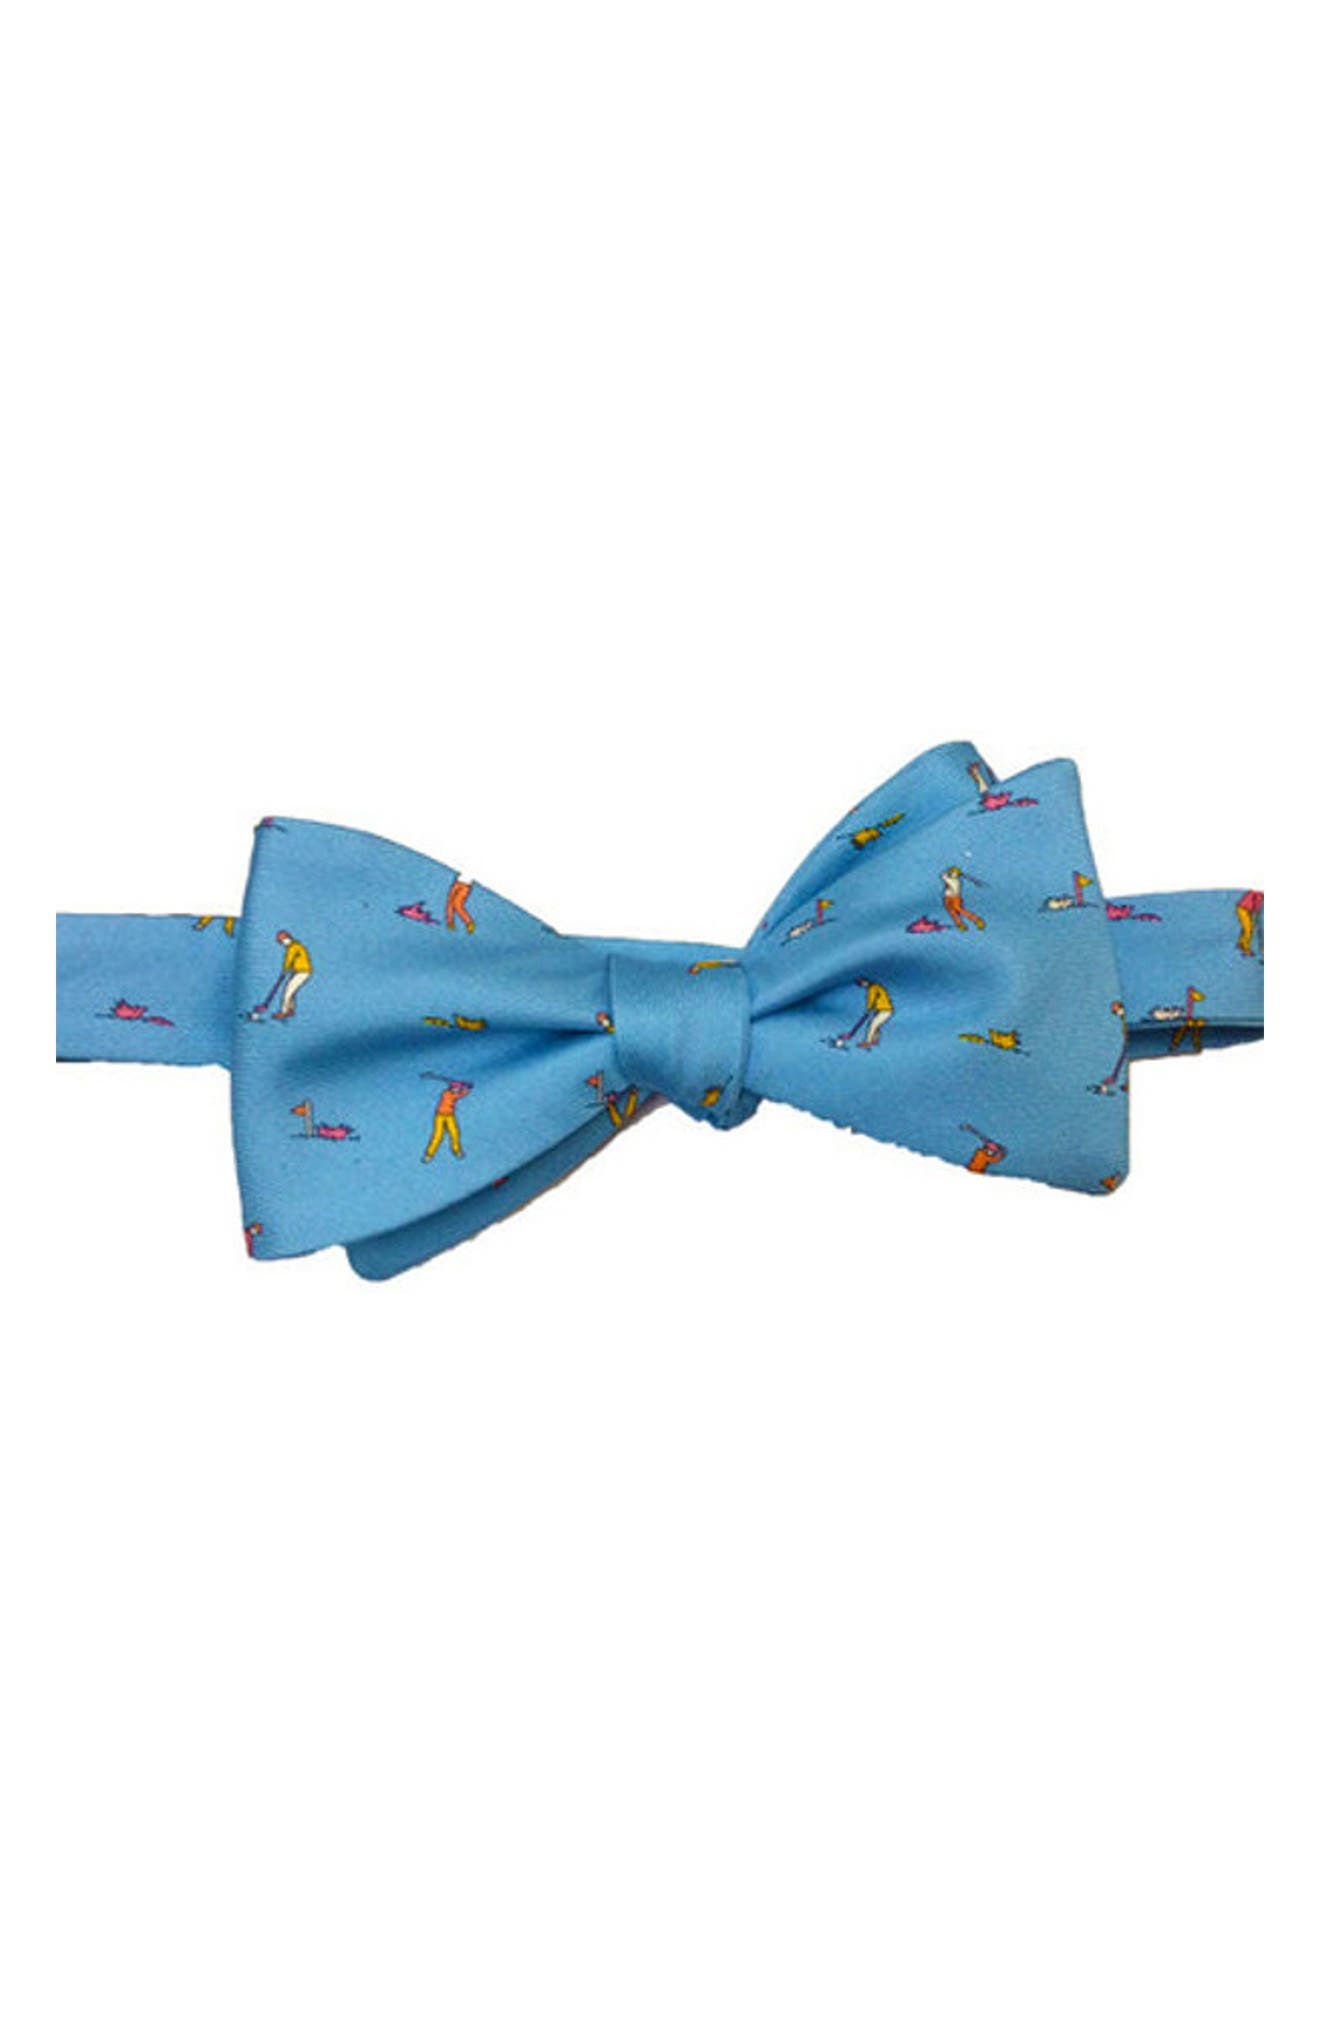 Foreplay Silk Bow Tie,                             Main thumbnail 1, color,                             450